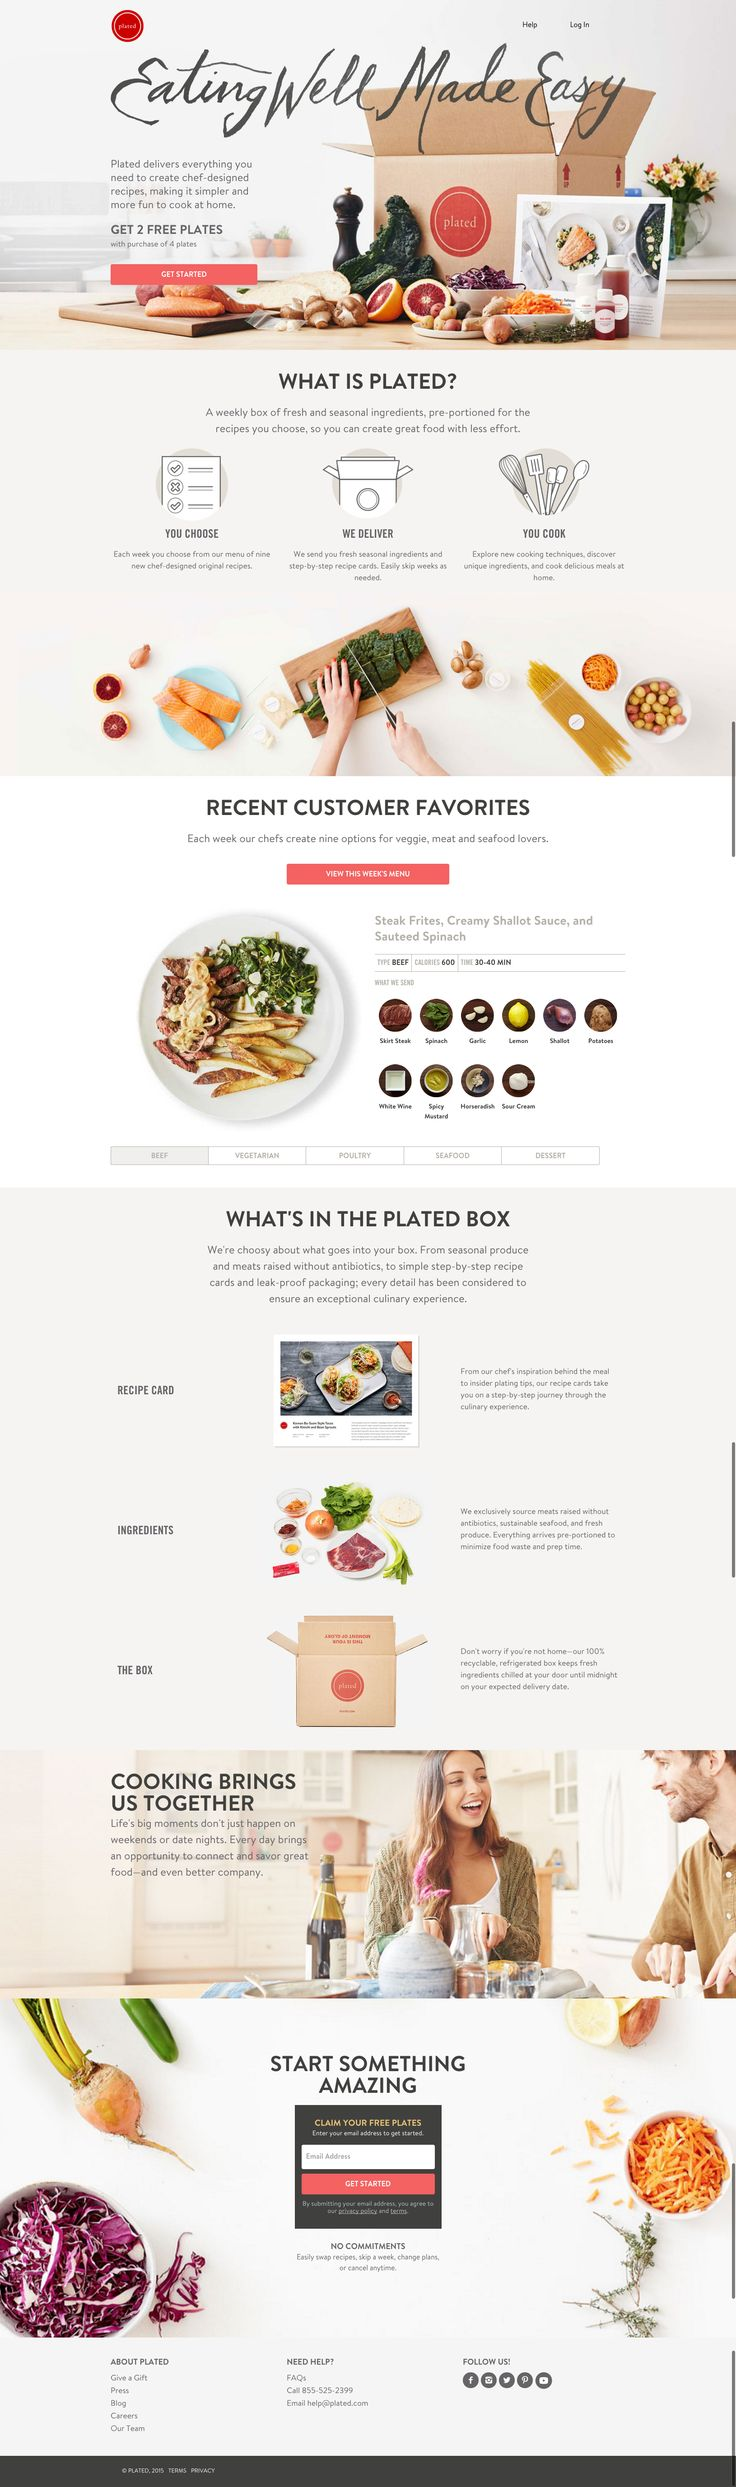 The Plated website does a great job of explaining what you are going to get and how it is a benefit to you